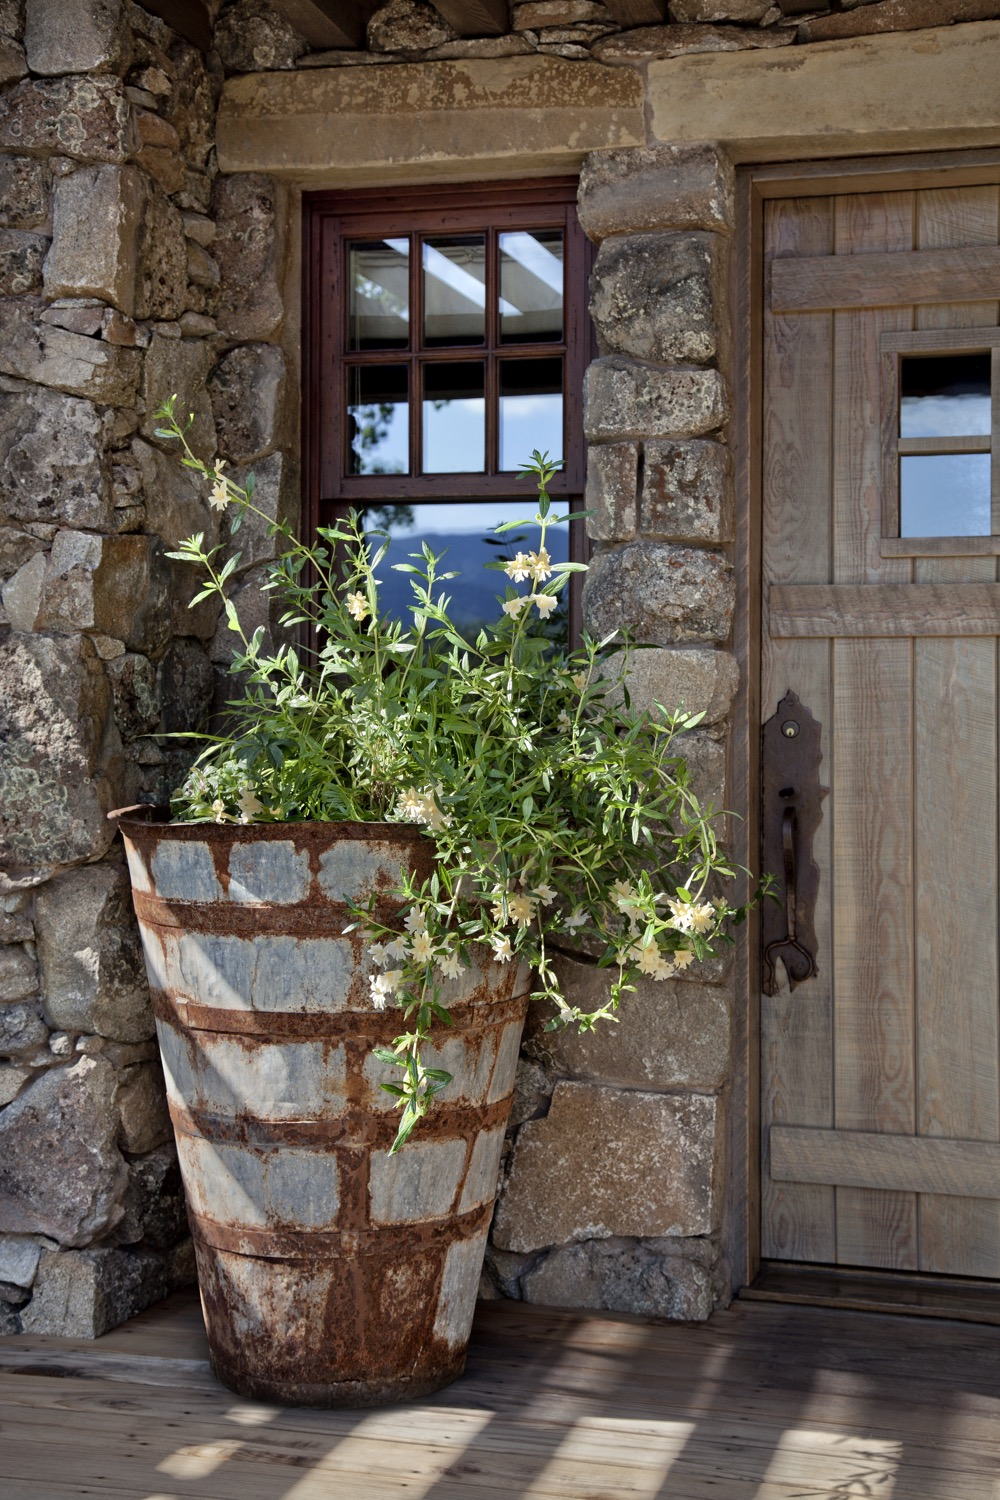 The guesthouse is covered in rustic, rough stone, and an old galvanized pot is a planter.